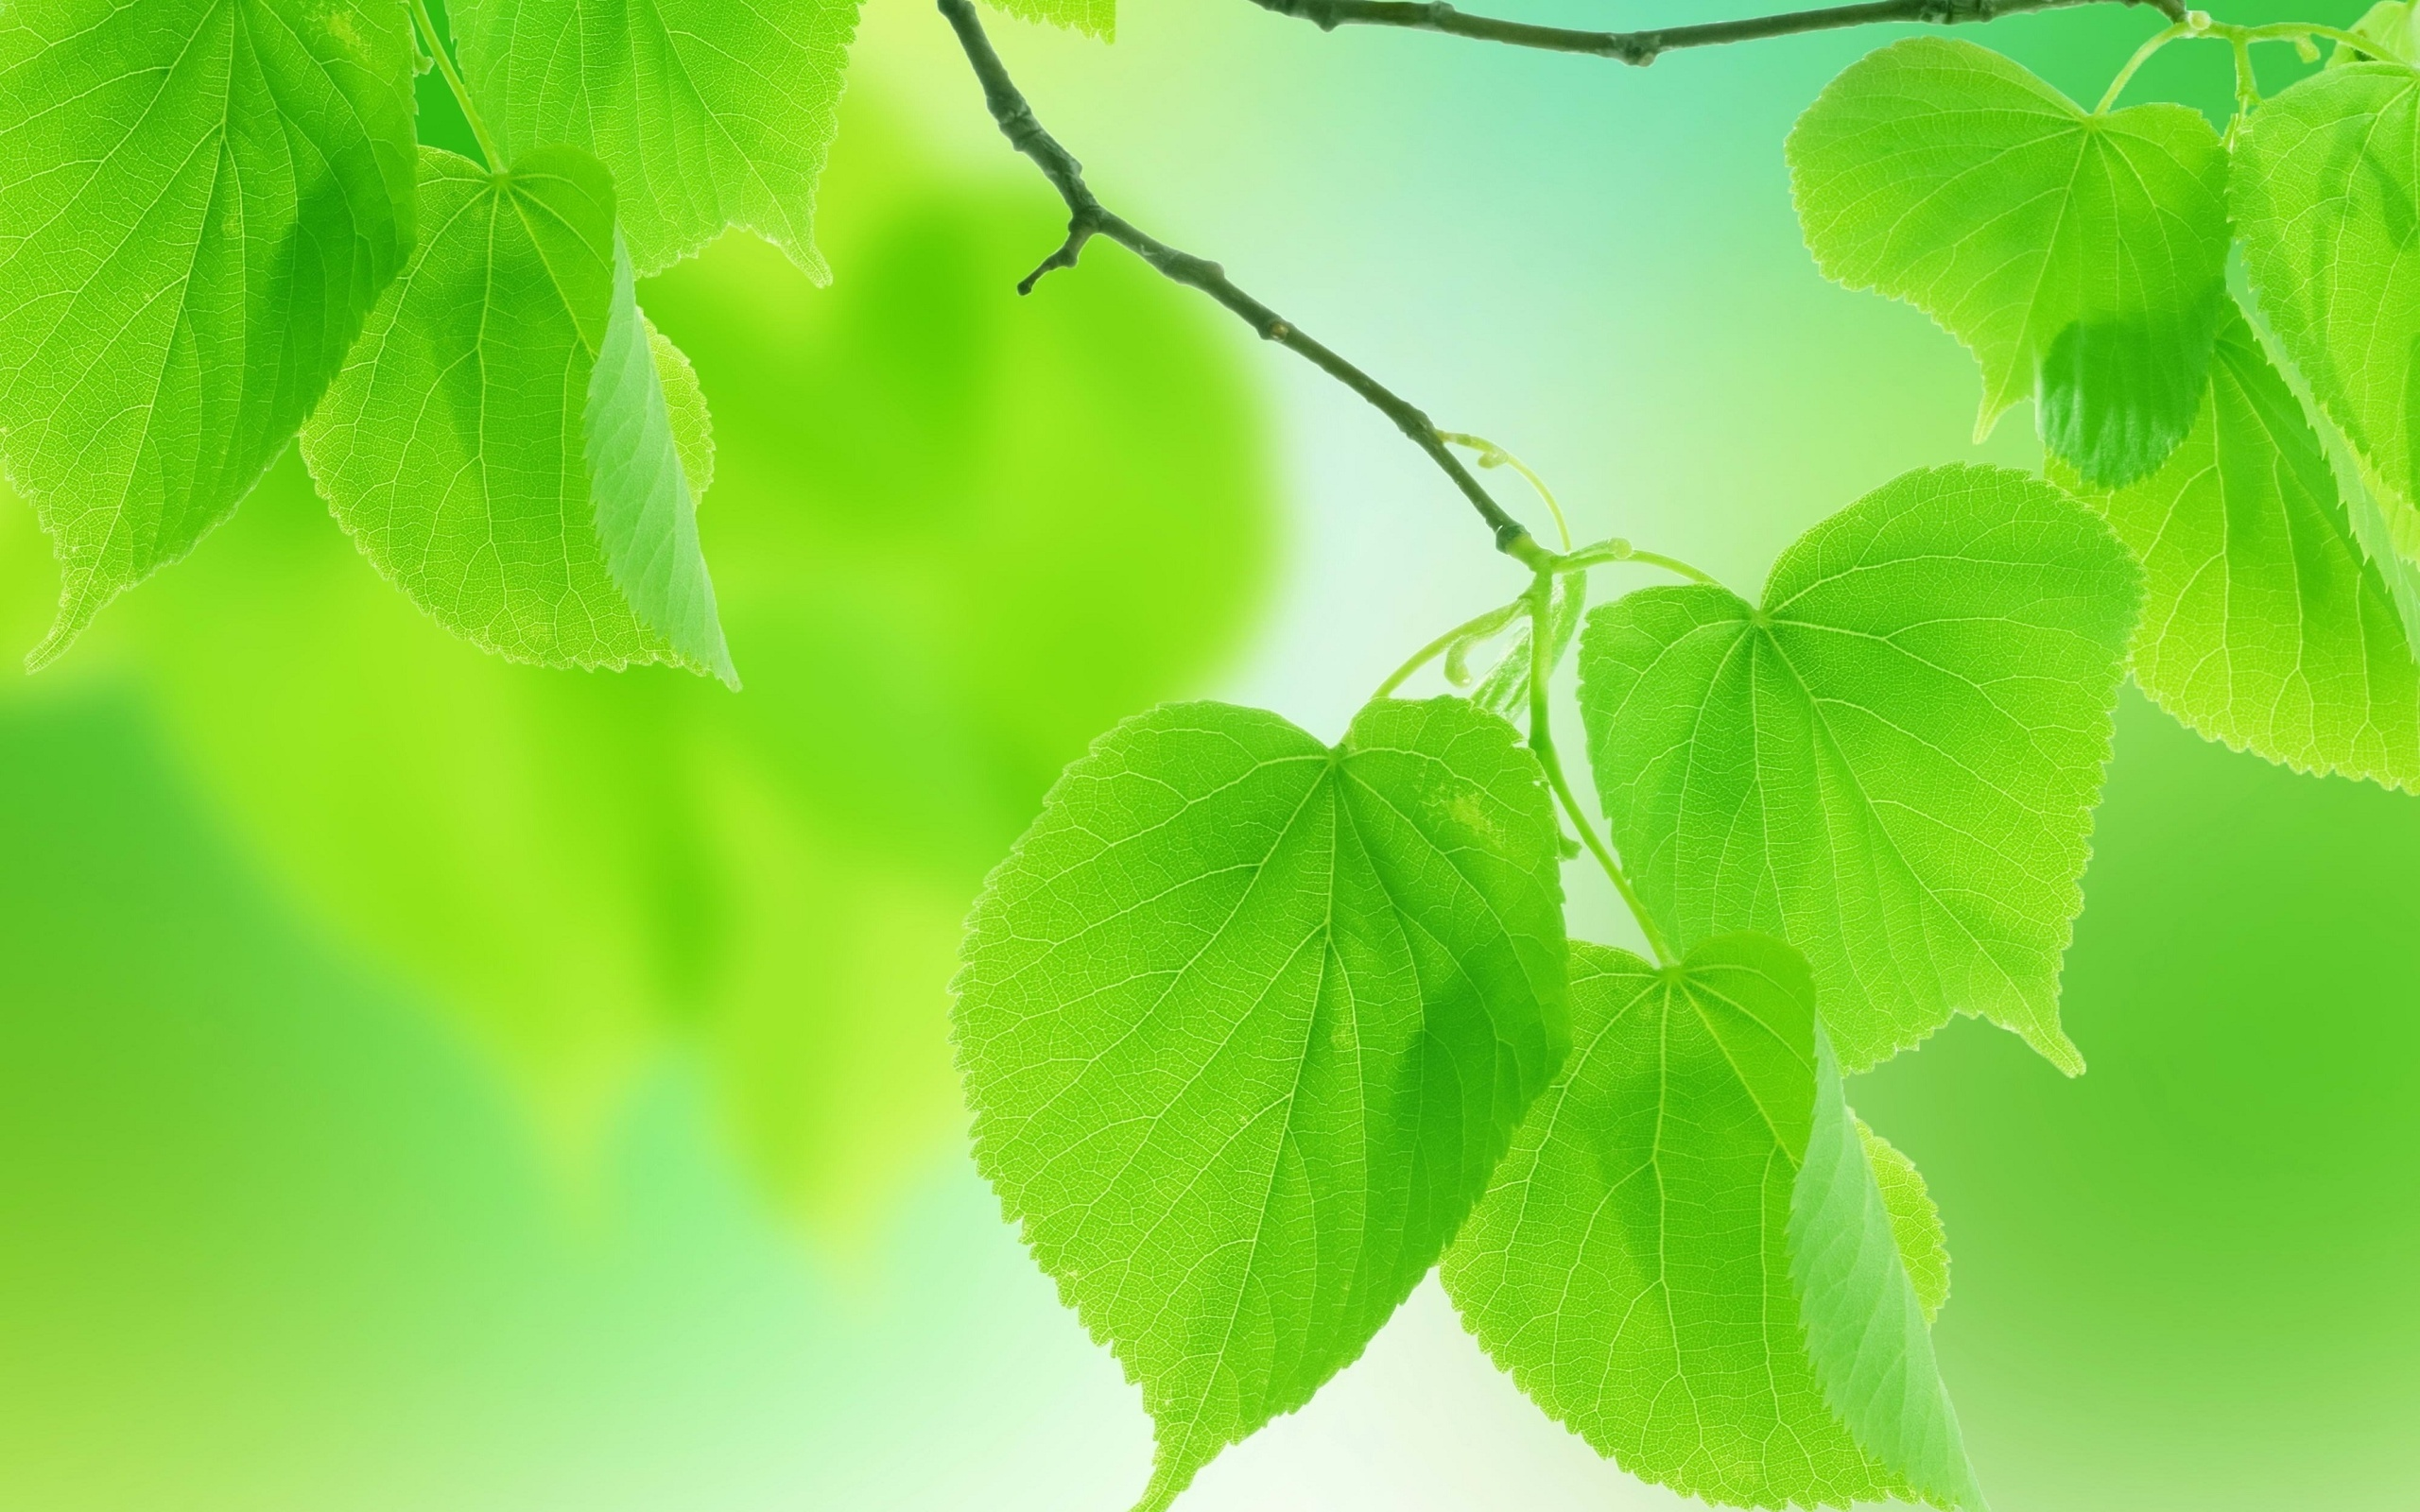 leaf background wallpaper - photo #30